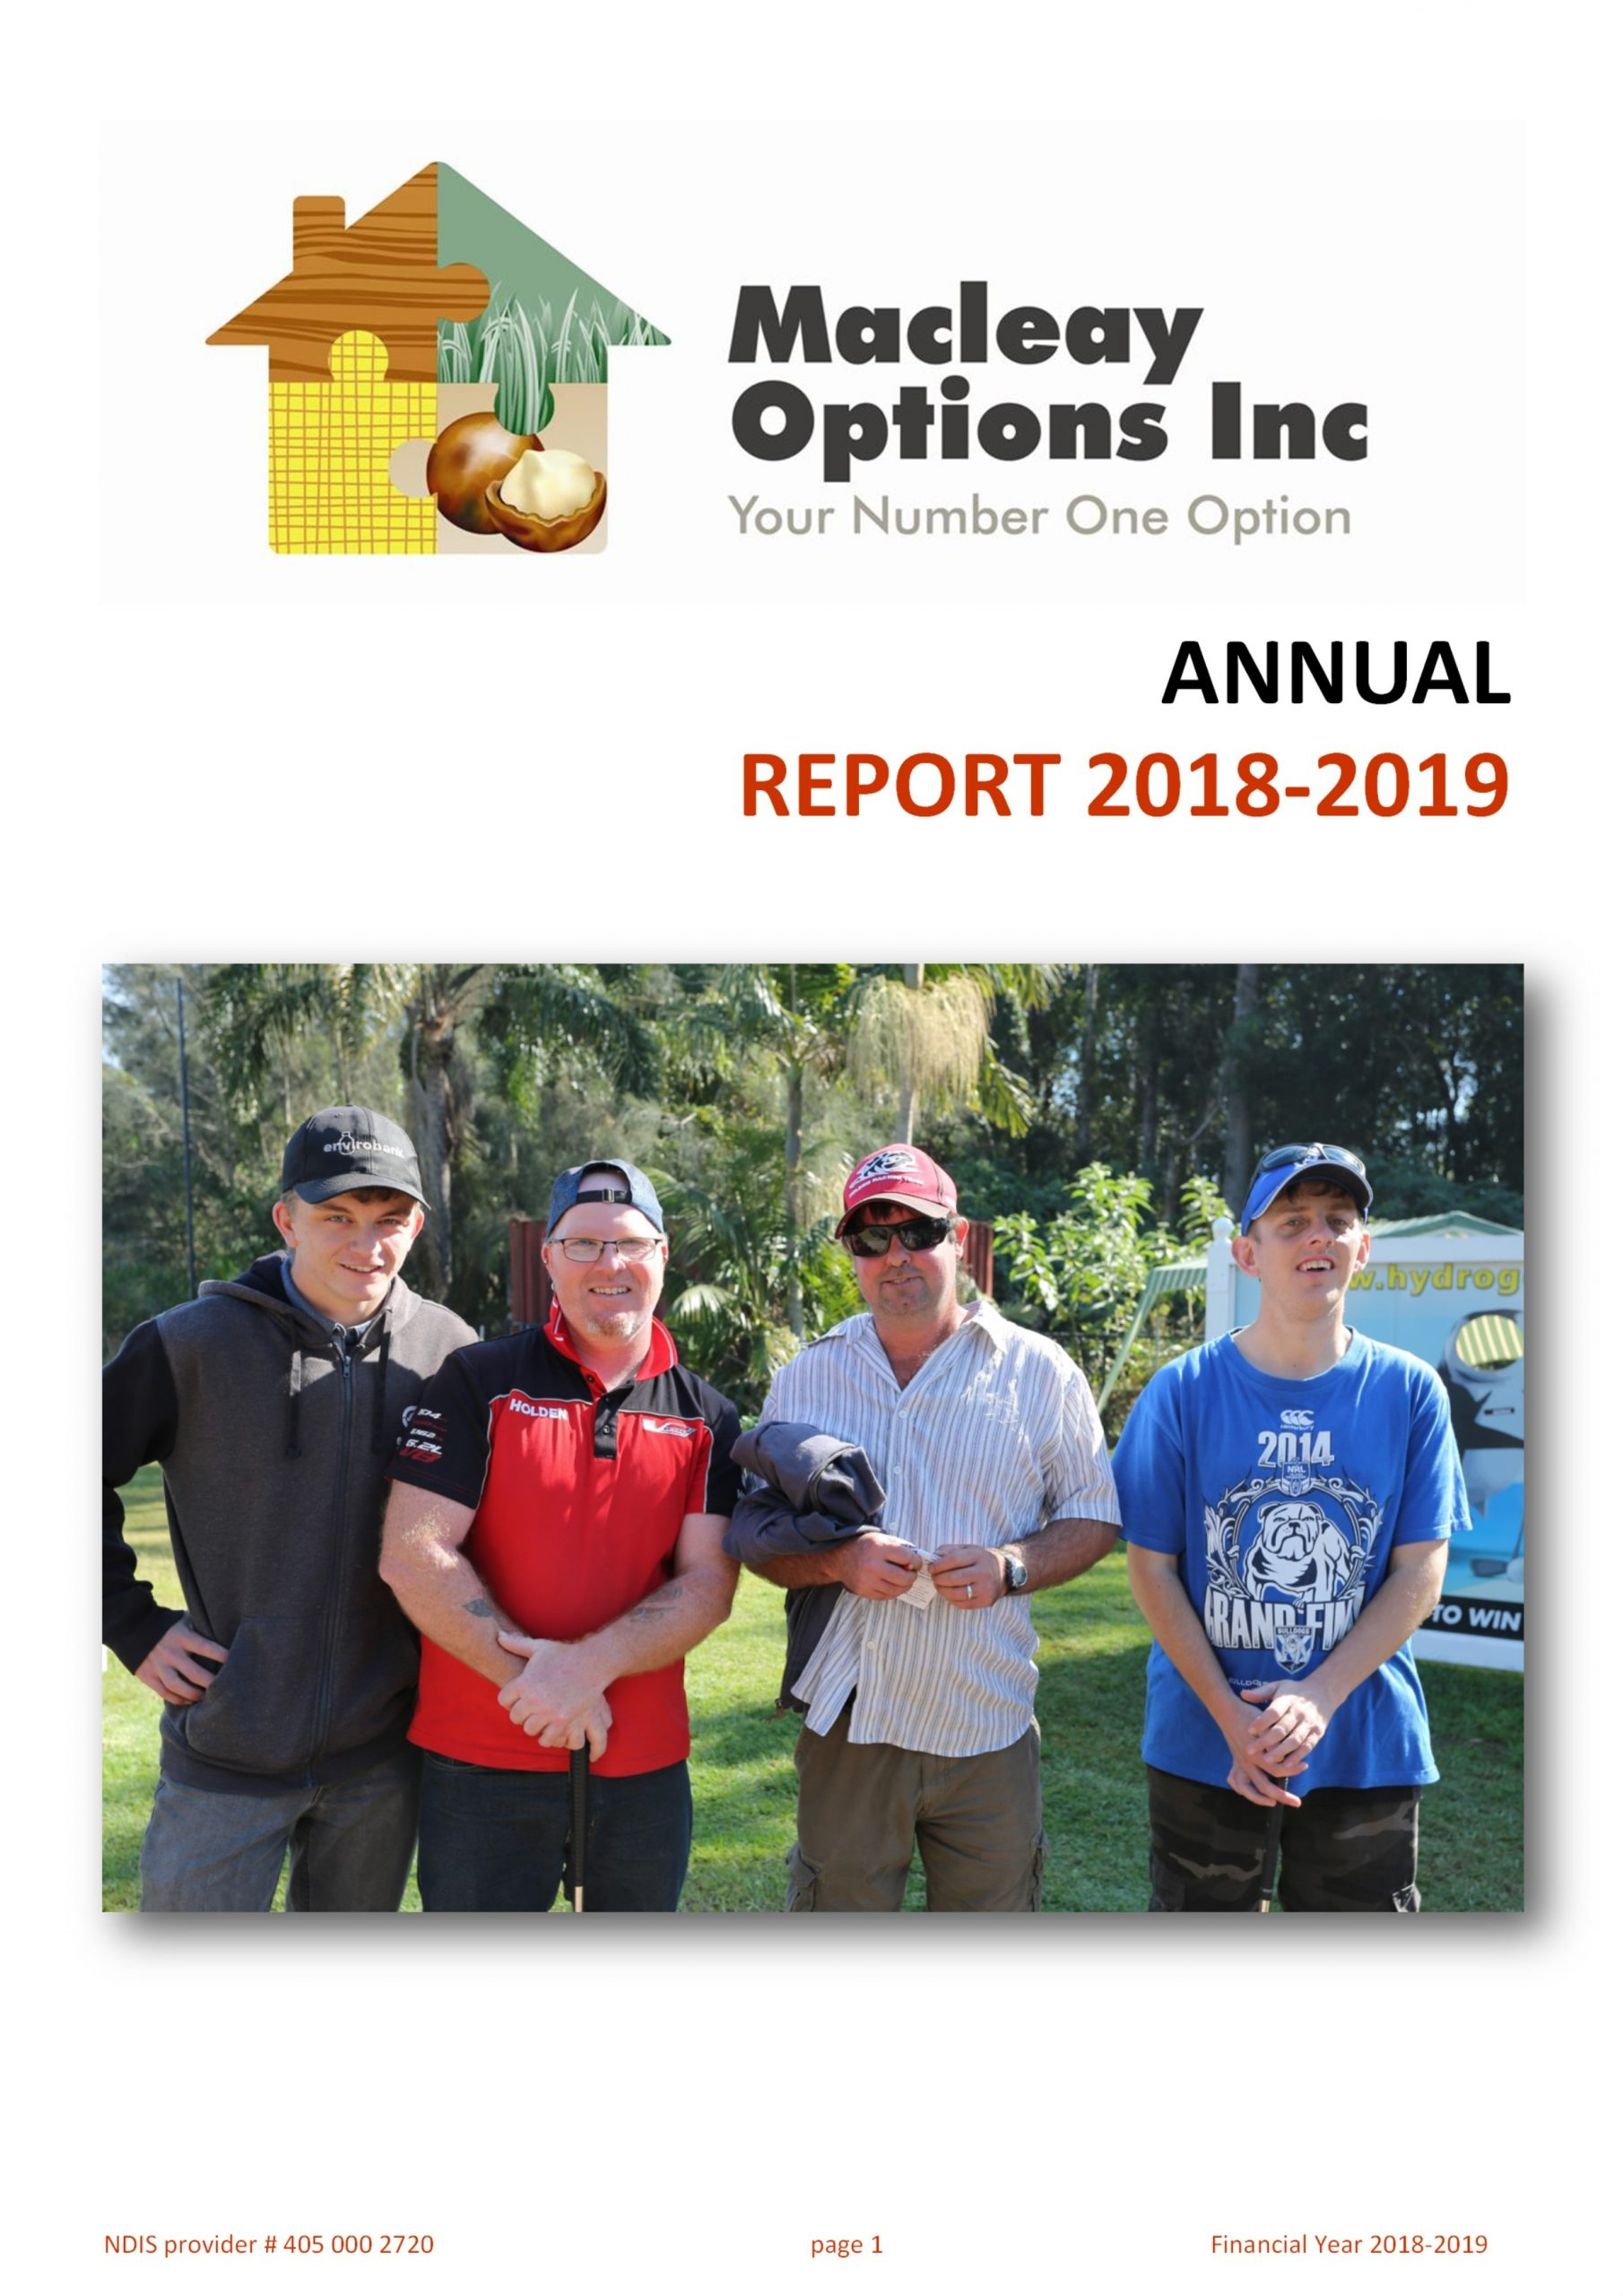 Macleay Options Inc. Annual Report 2018-2019